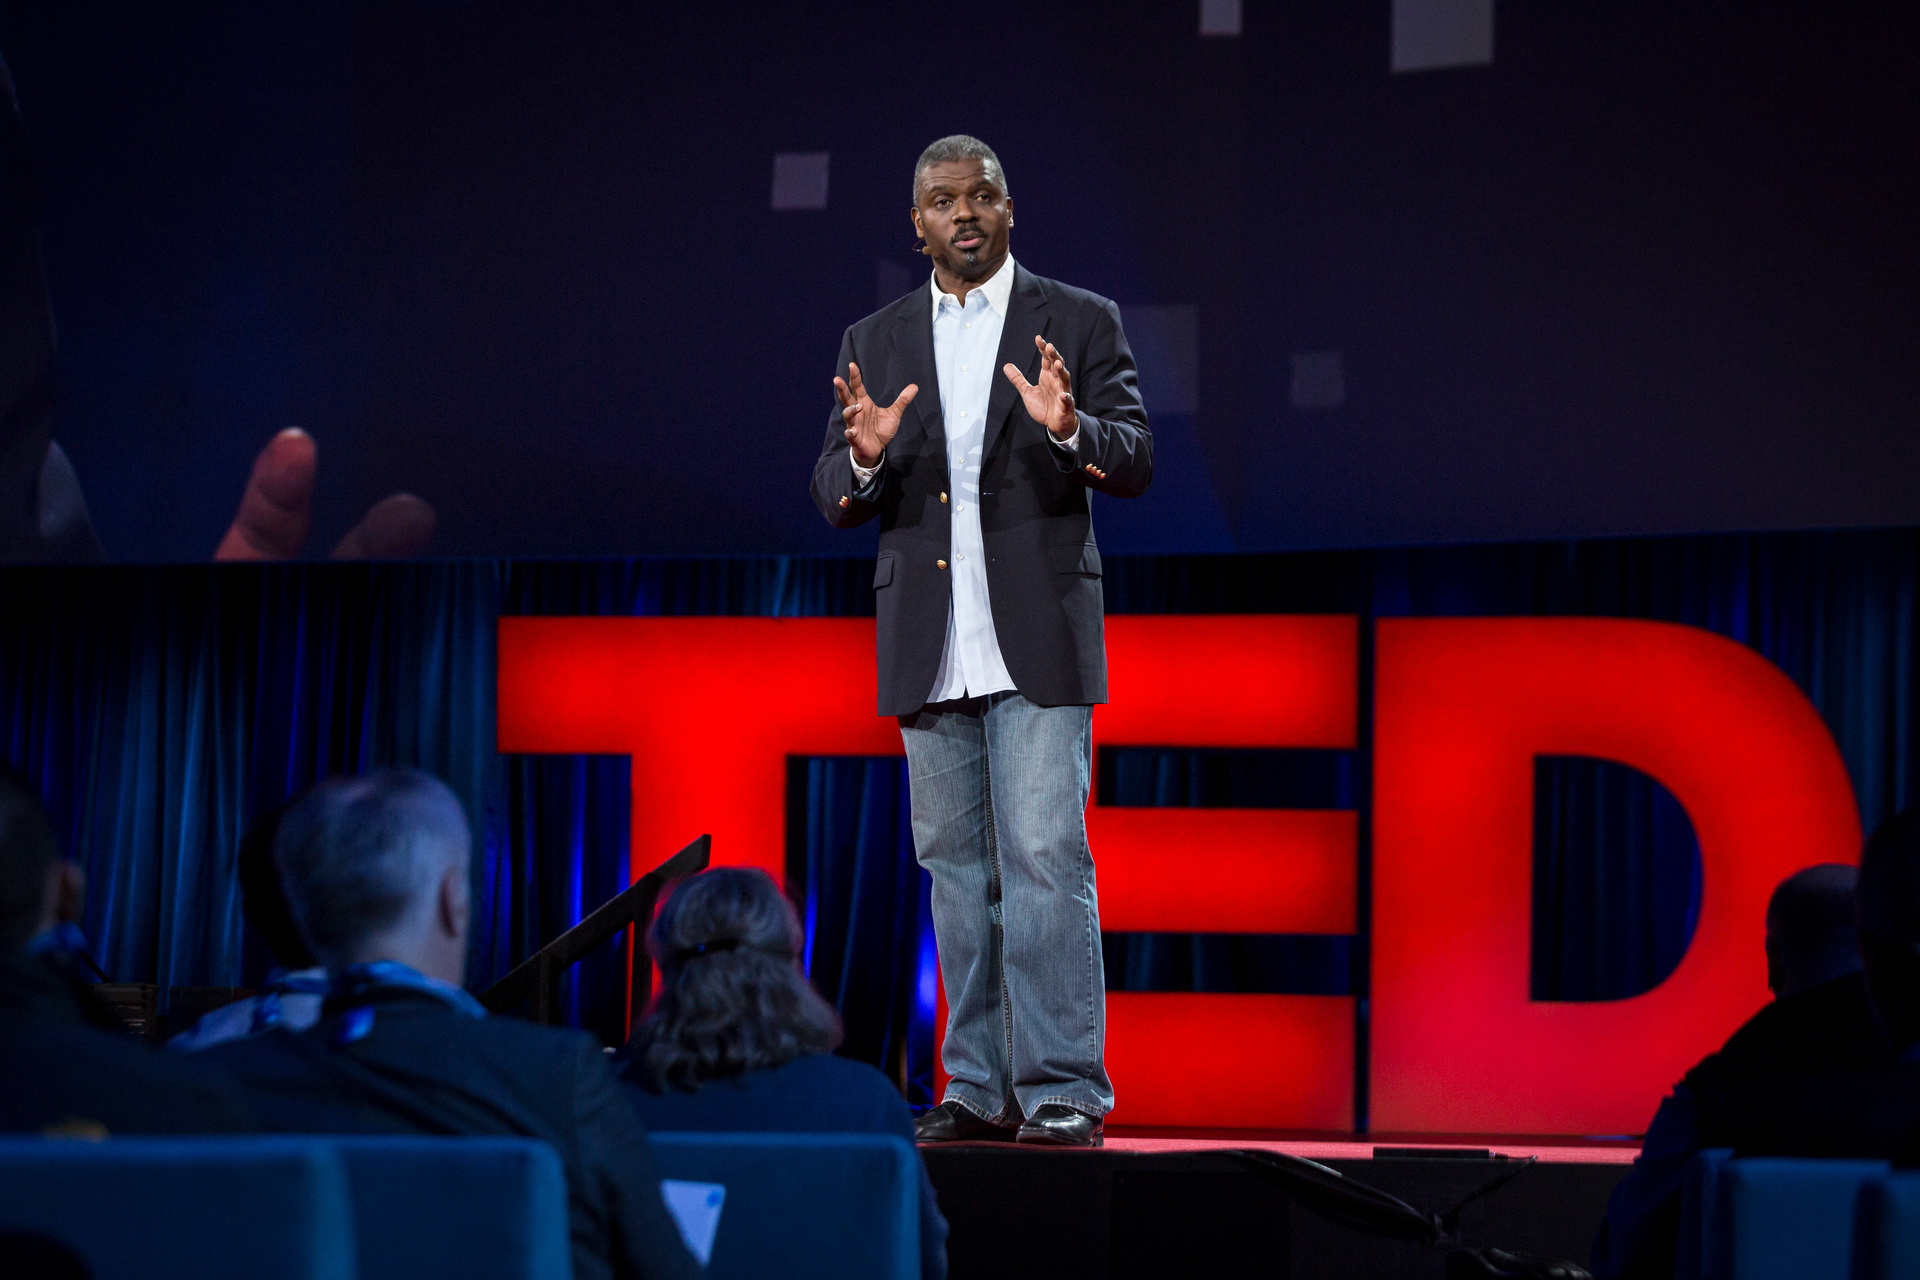 Jeffrey Brown gives a powerful talk at TED2015 about how he, a Baptist minister, learned to work with drug dealers and gang members to reduce violence. Photo: Bret Hartman/TED